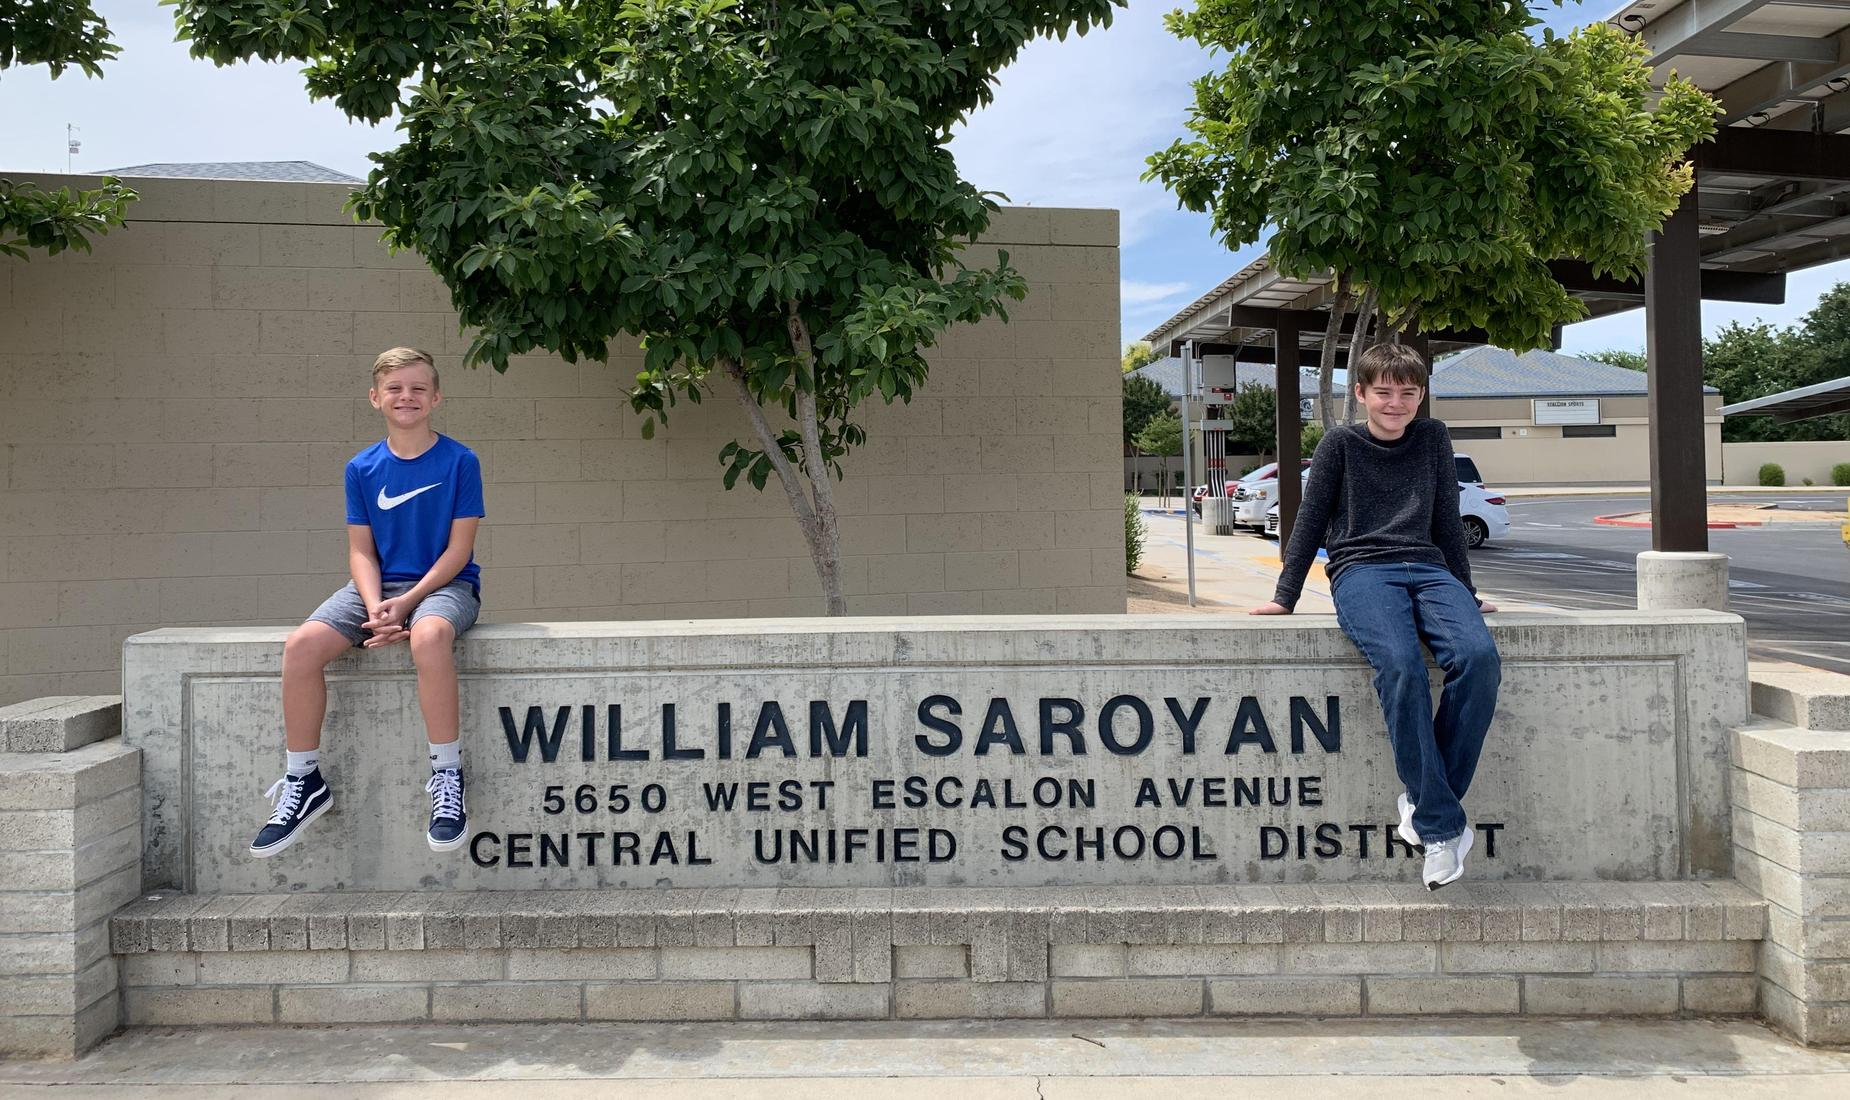 Two of Saroyan's proud students